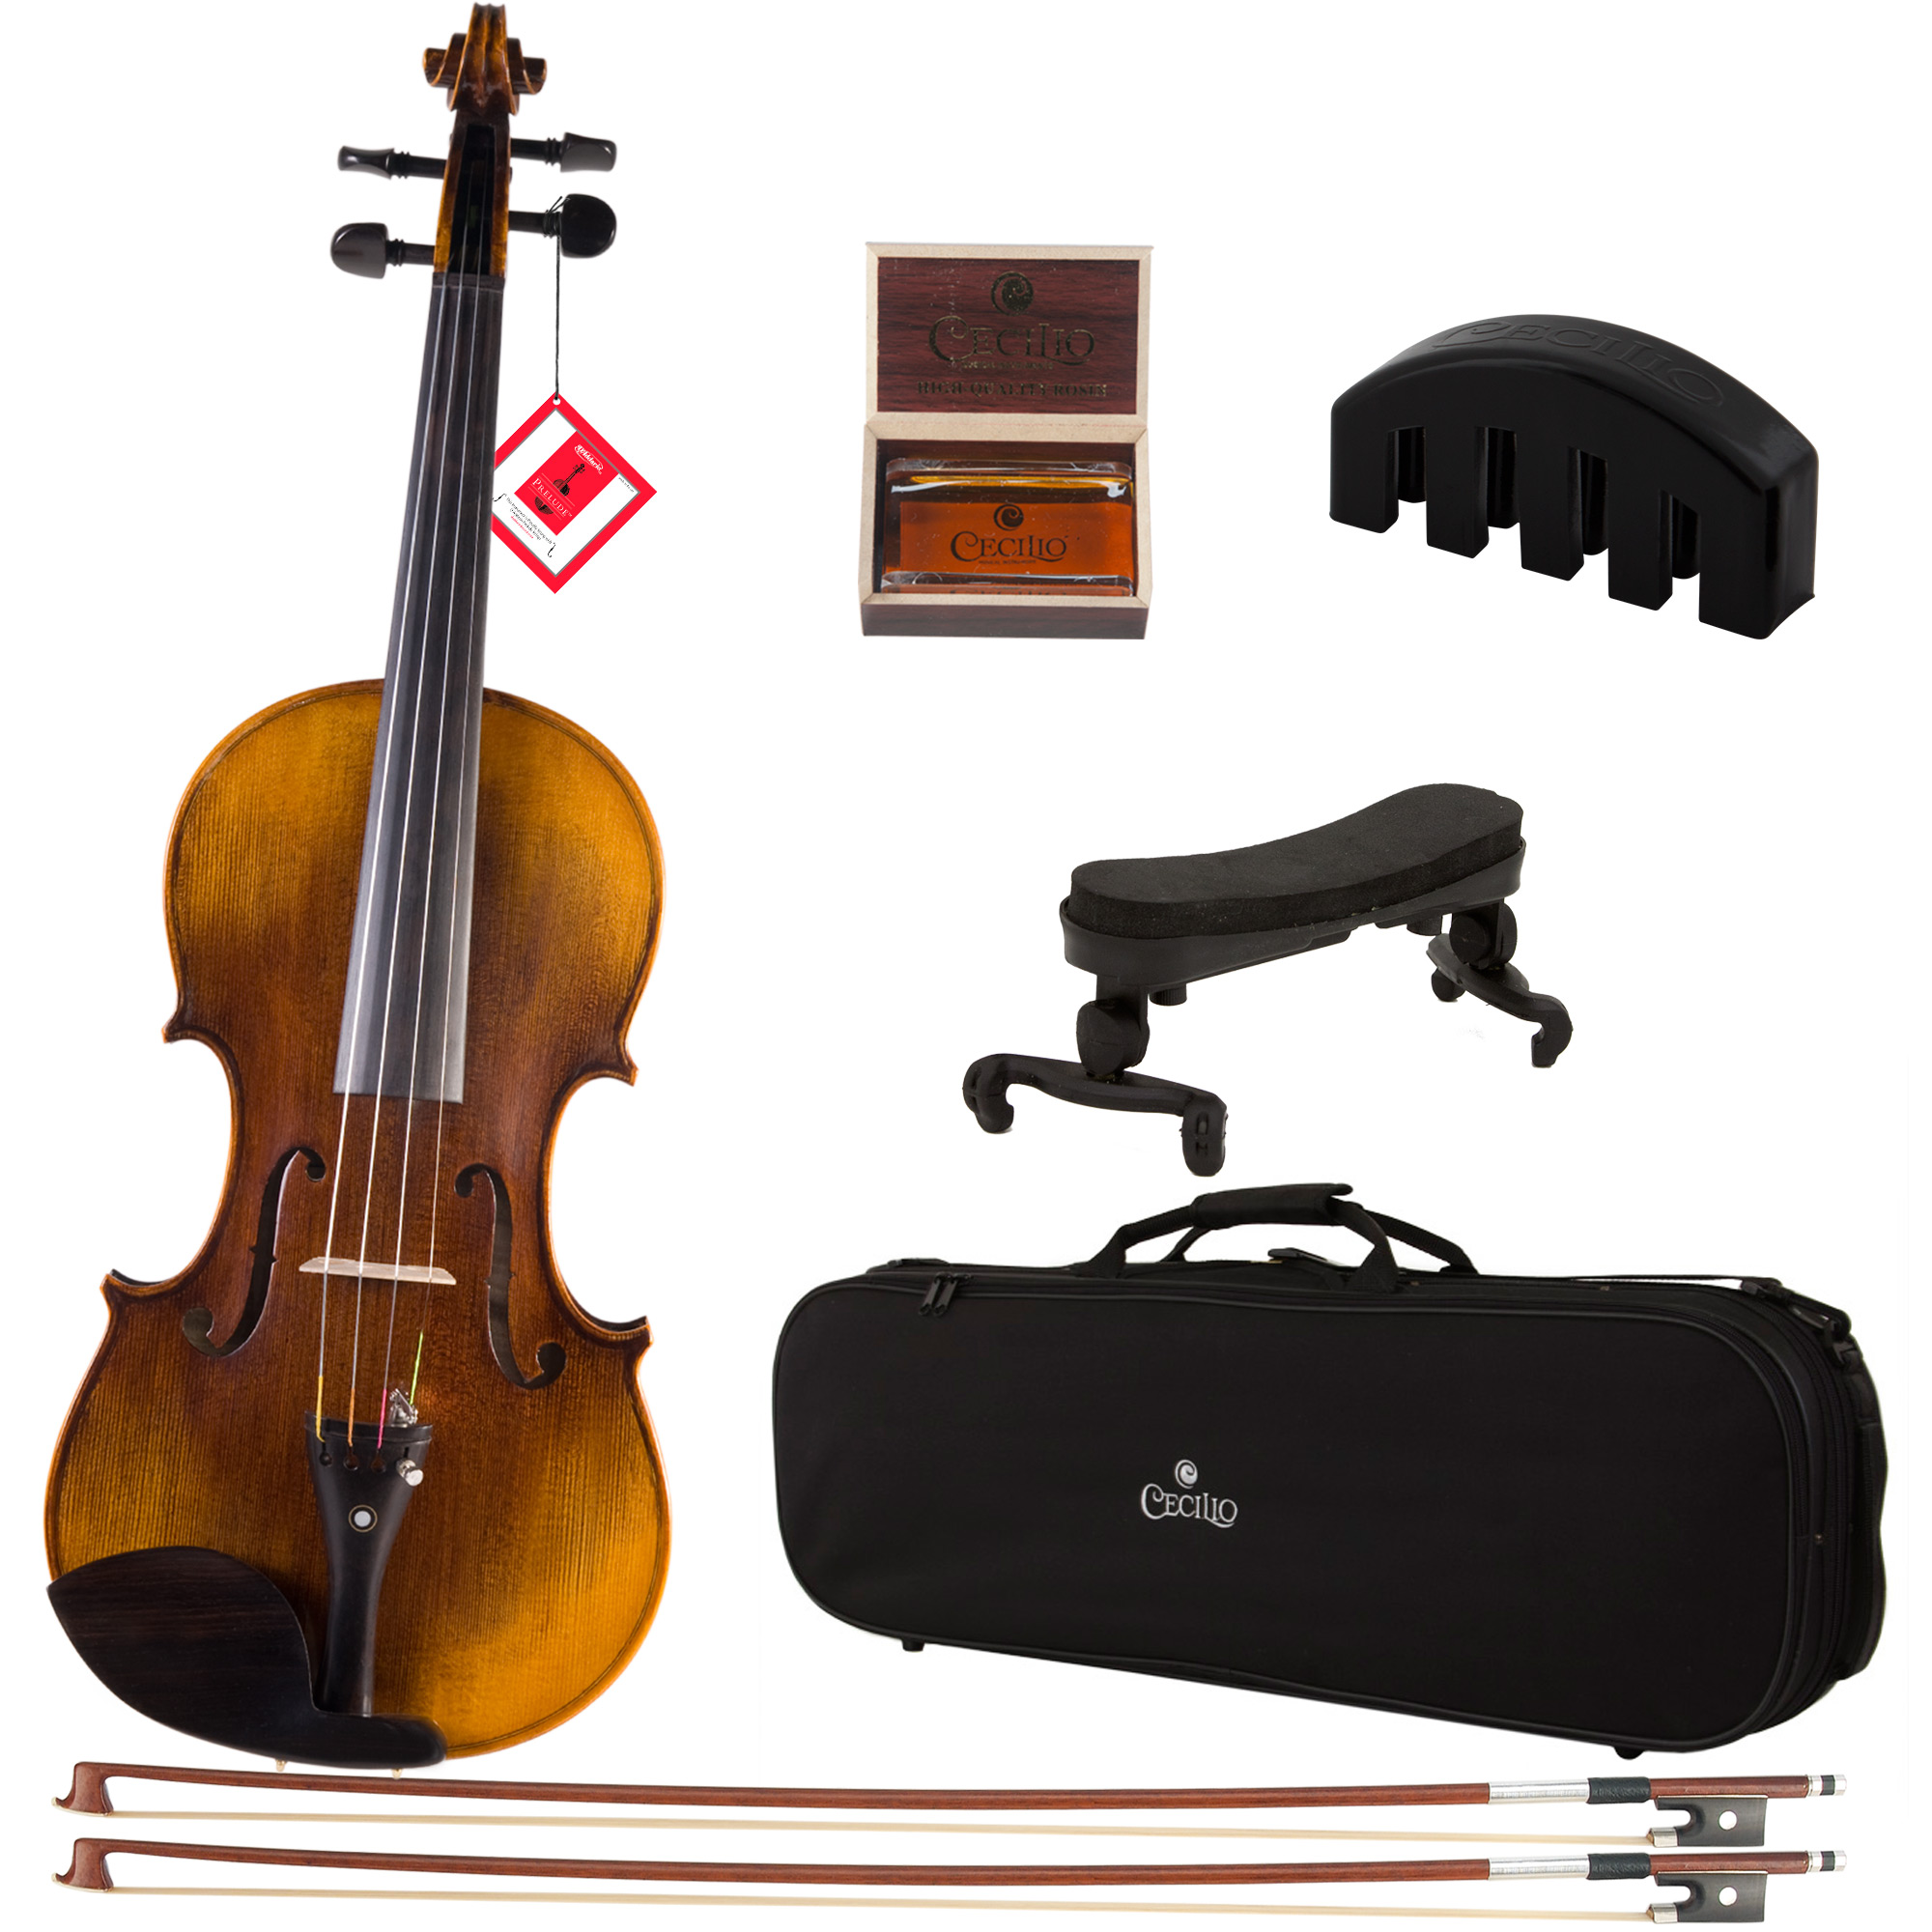 Cecilio Size 4/4 CVN-600 1pcs Back Flamed Ebony Fitted Violin with D'Addario Prelude Strings, Violin Mute, Shoulder Rest